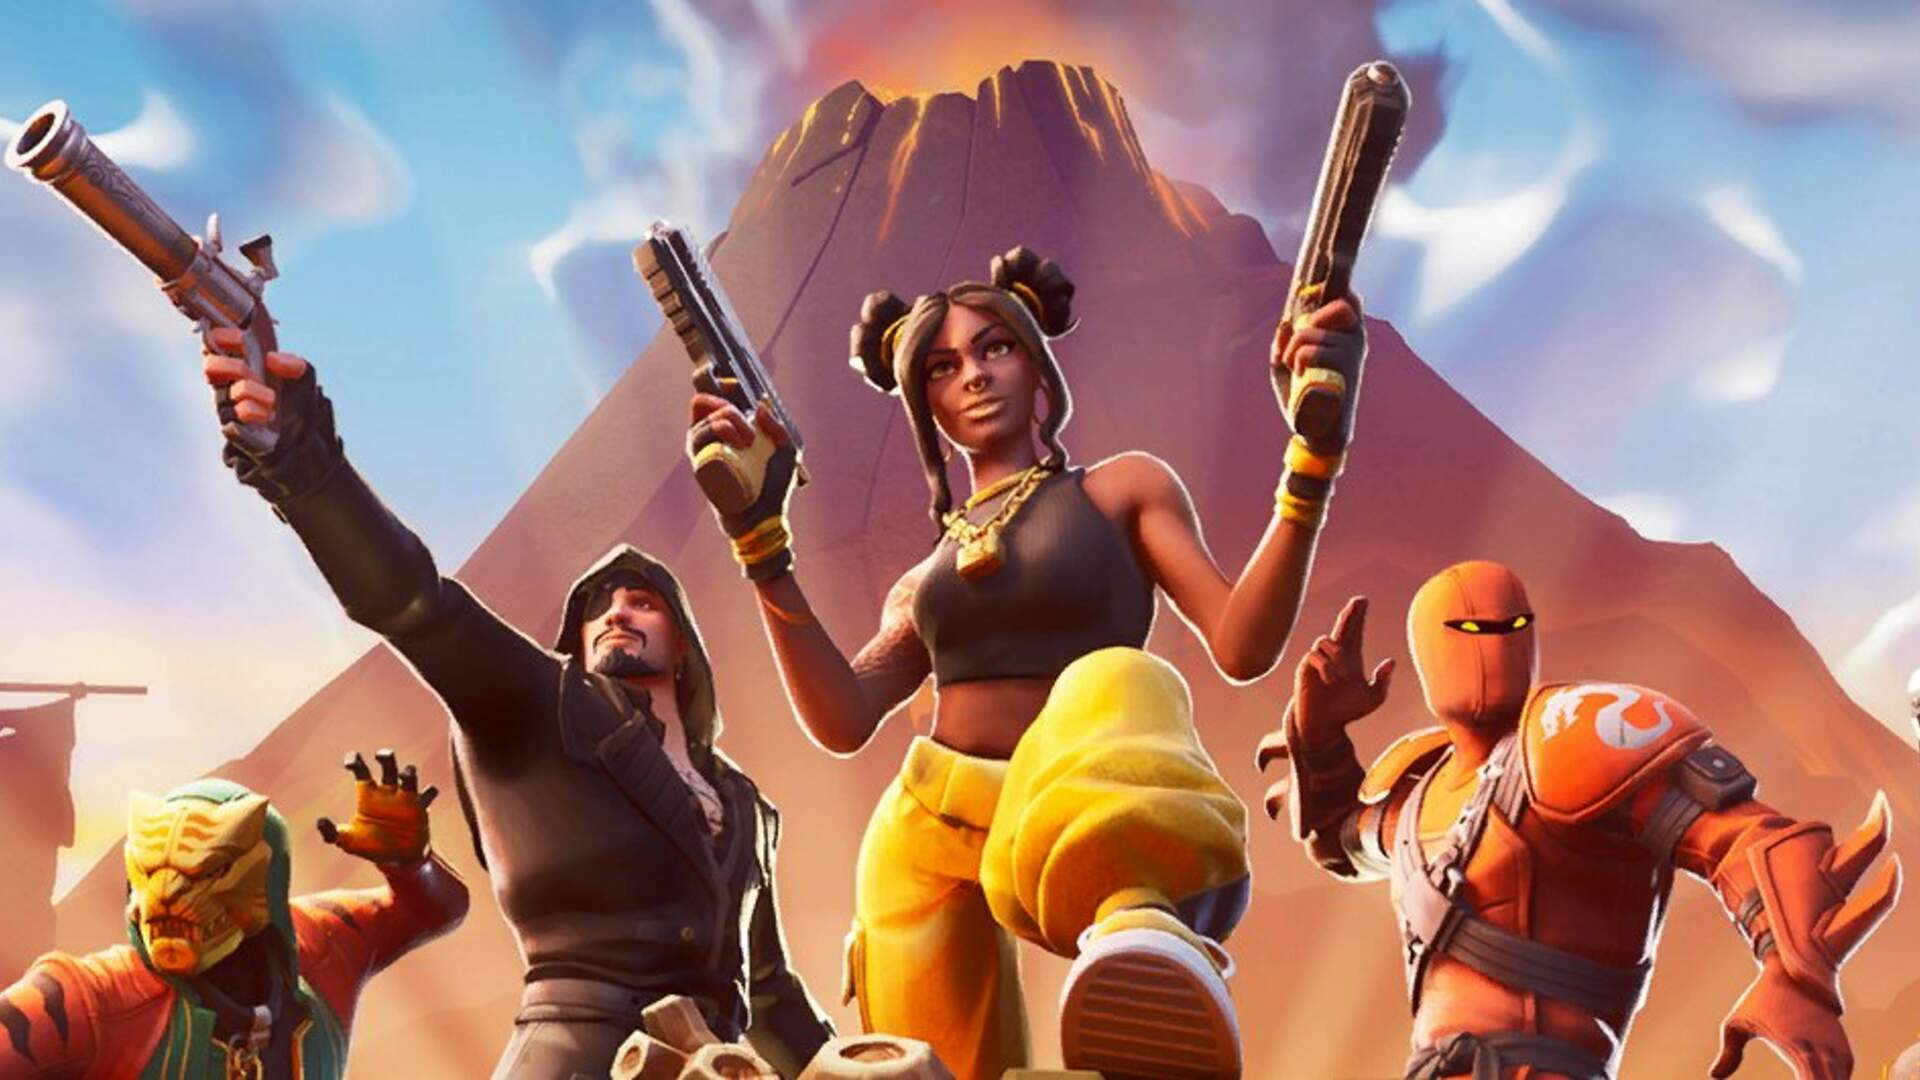 Fortnite Week 1 Challenges - How to Complete Season 8 Week 1 Battle Pass Challenges